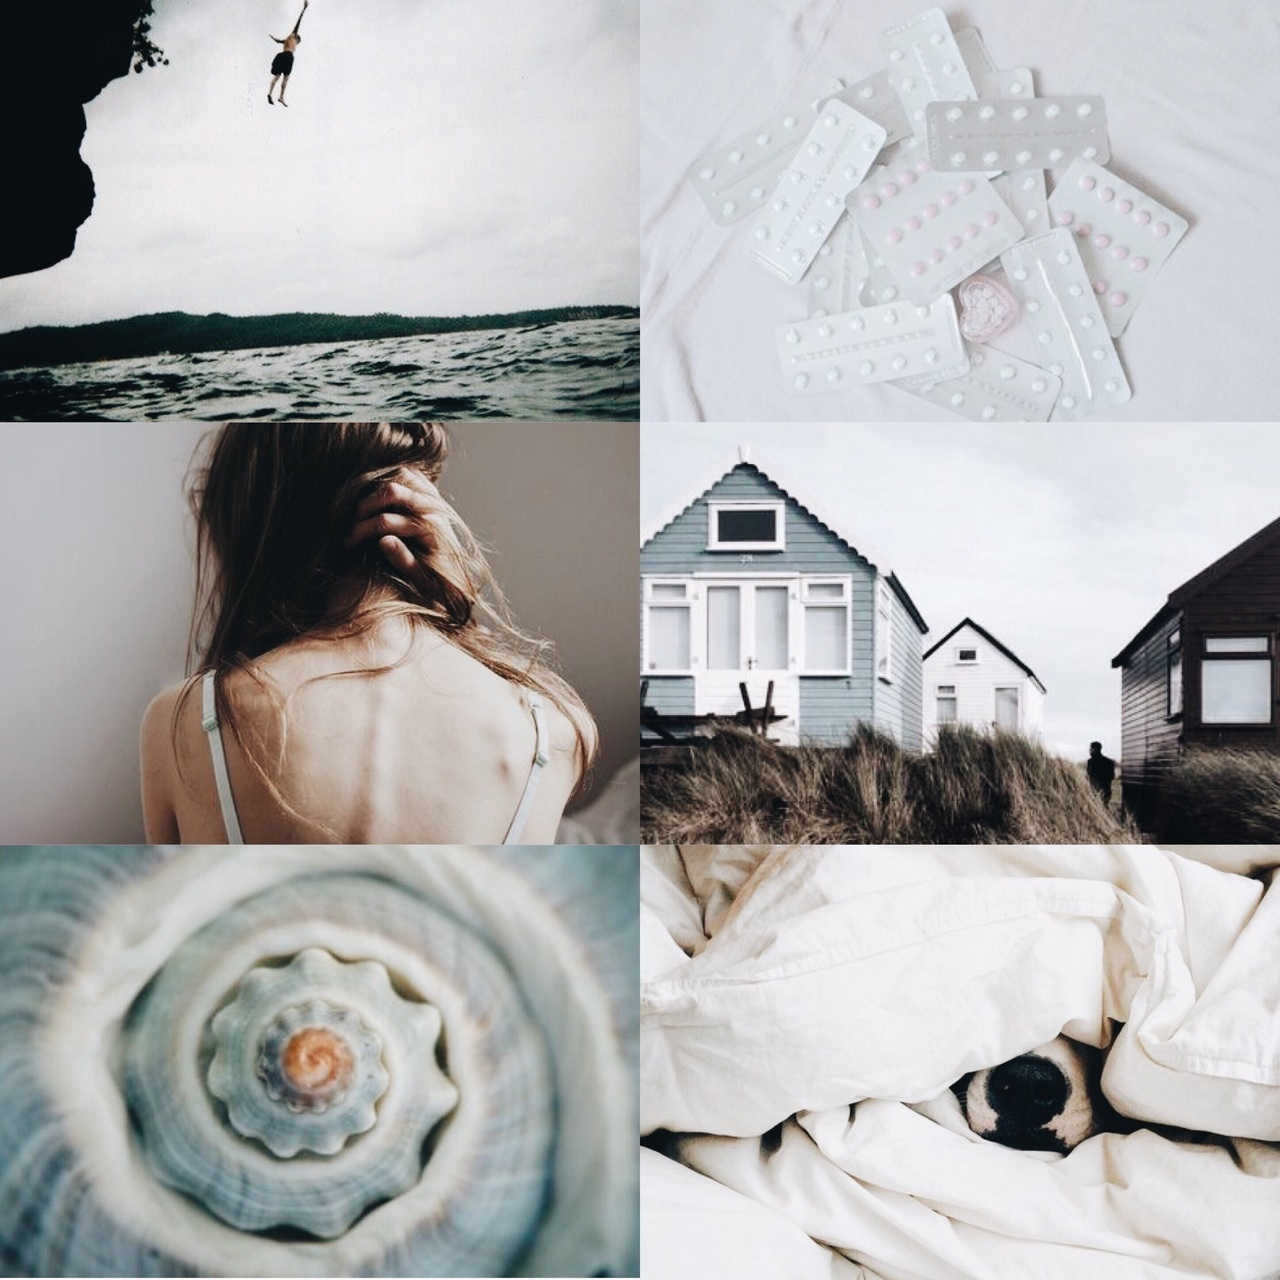 we were liars by e. lockhart [1/2] on We Heart It